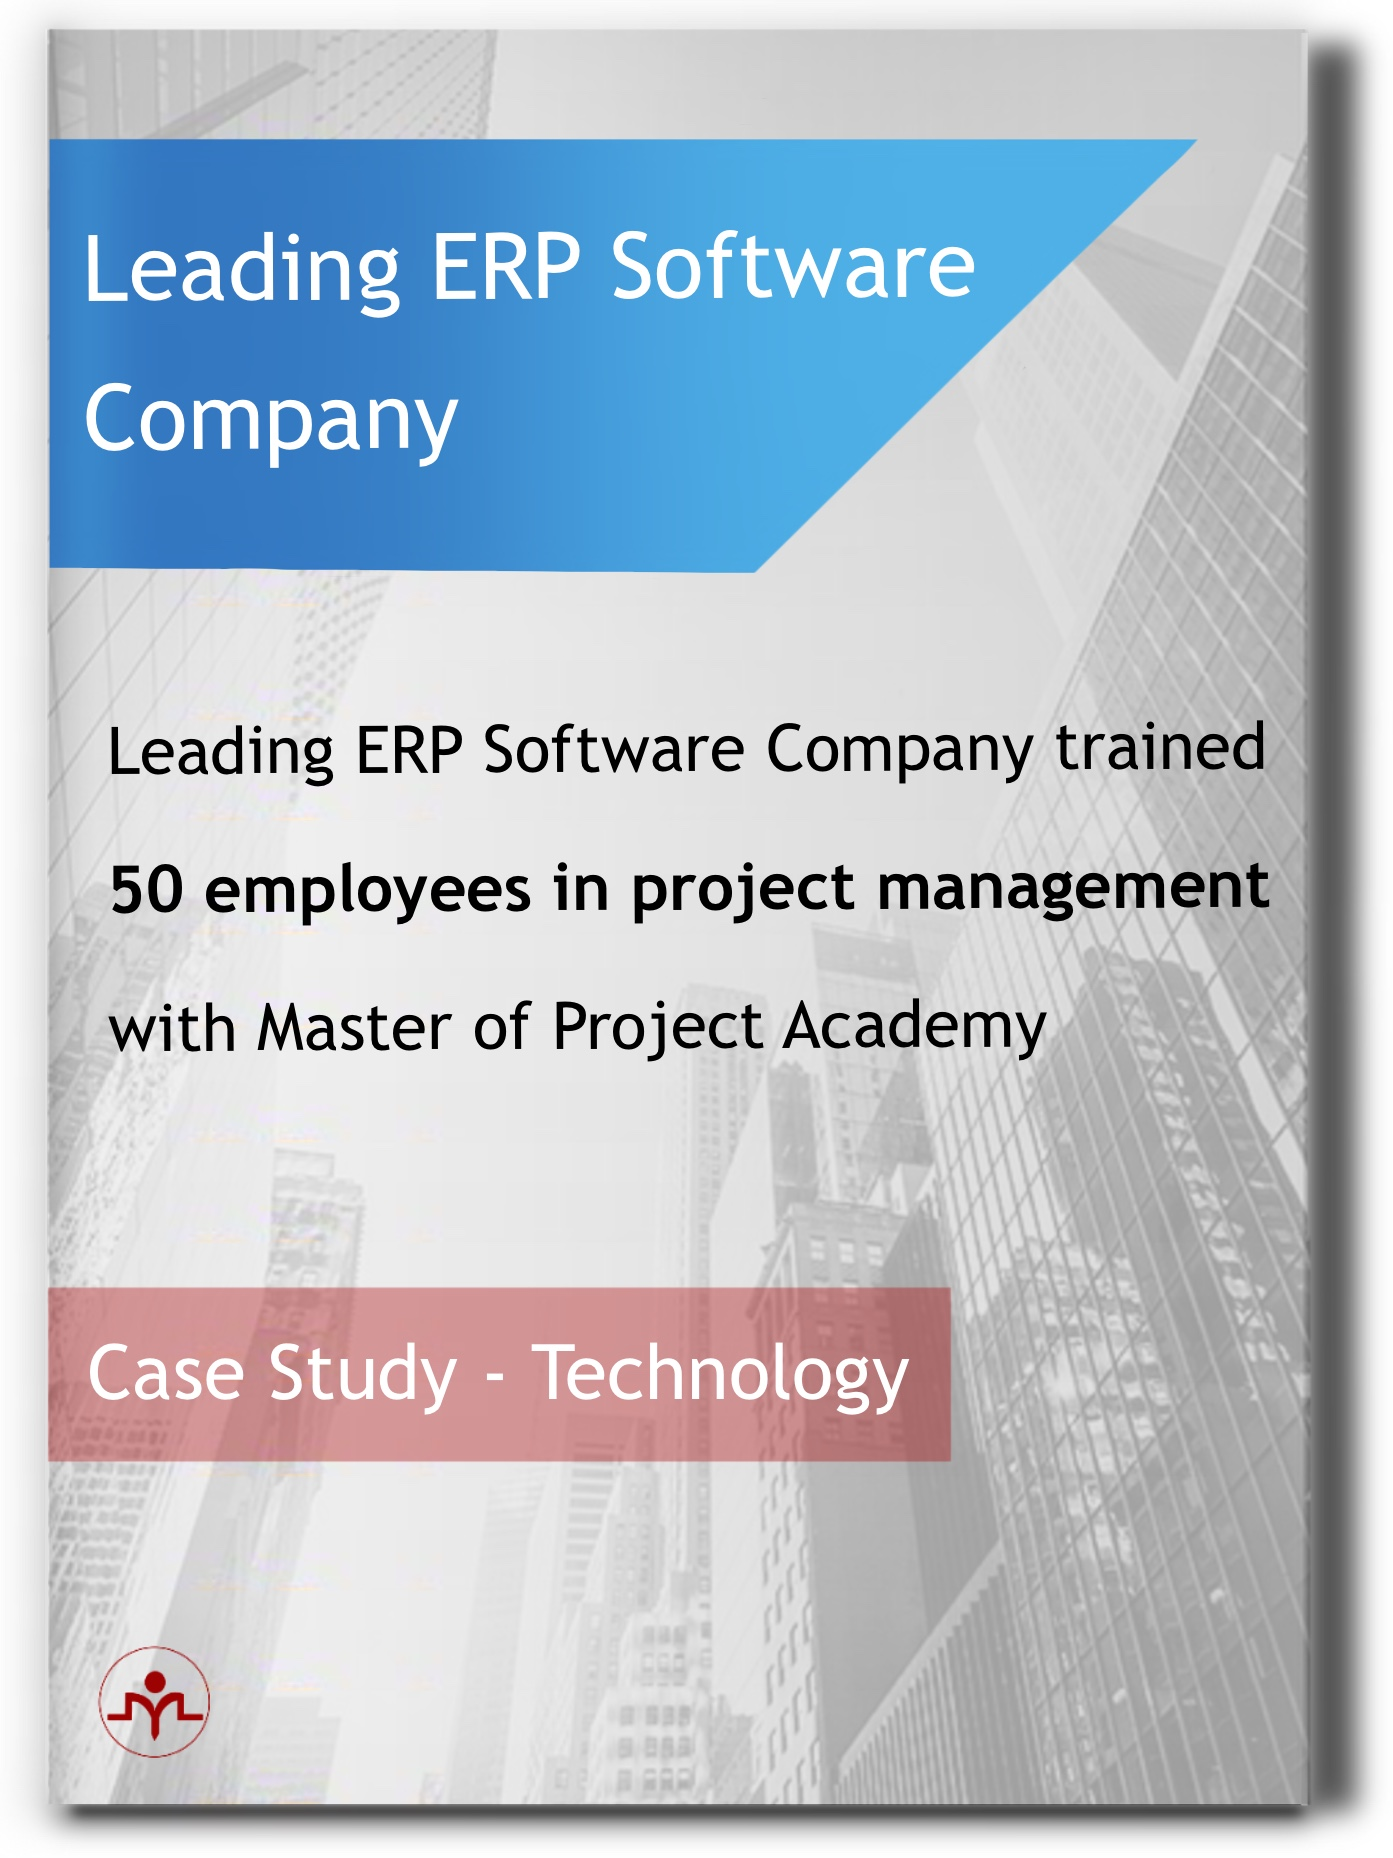 Leading ERP Software Company-Client Case Study